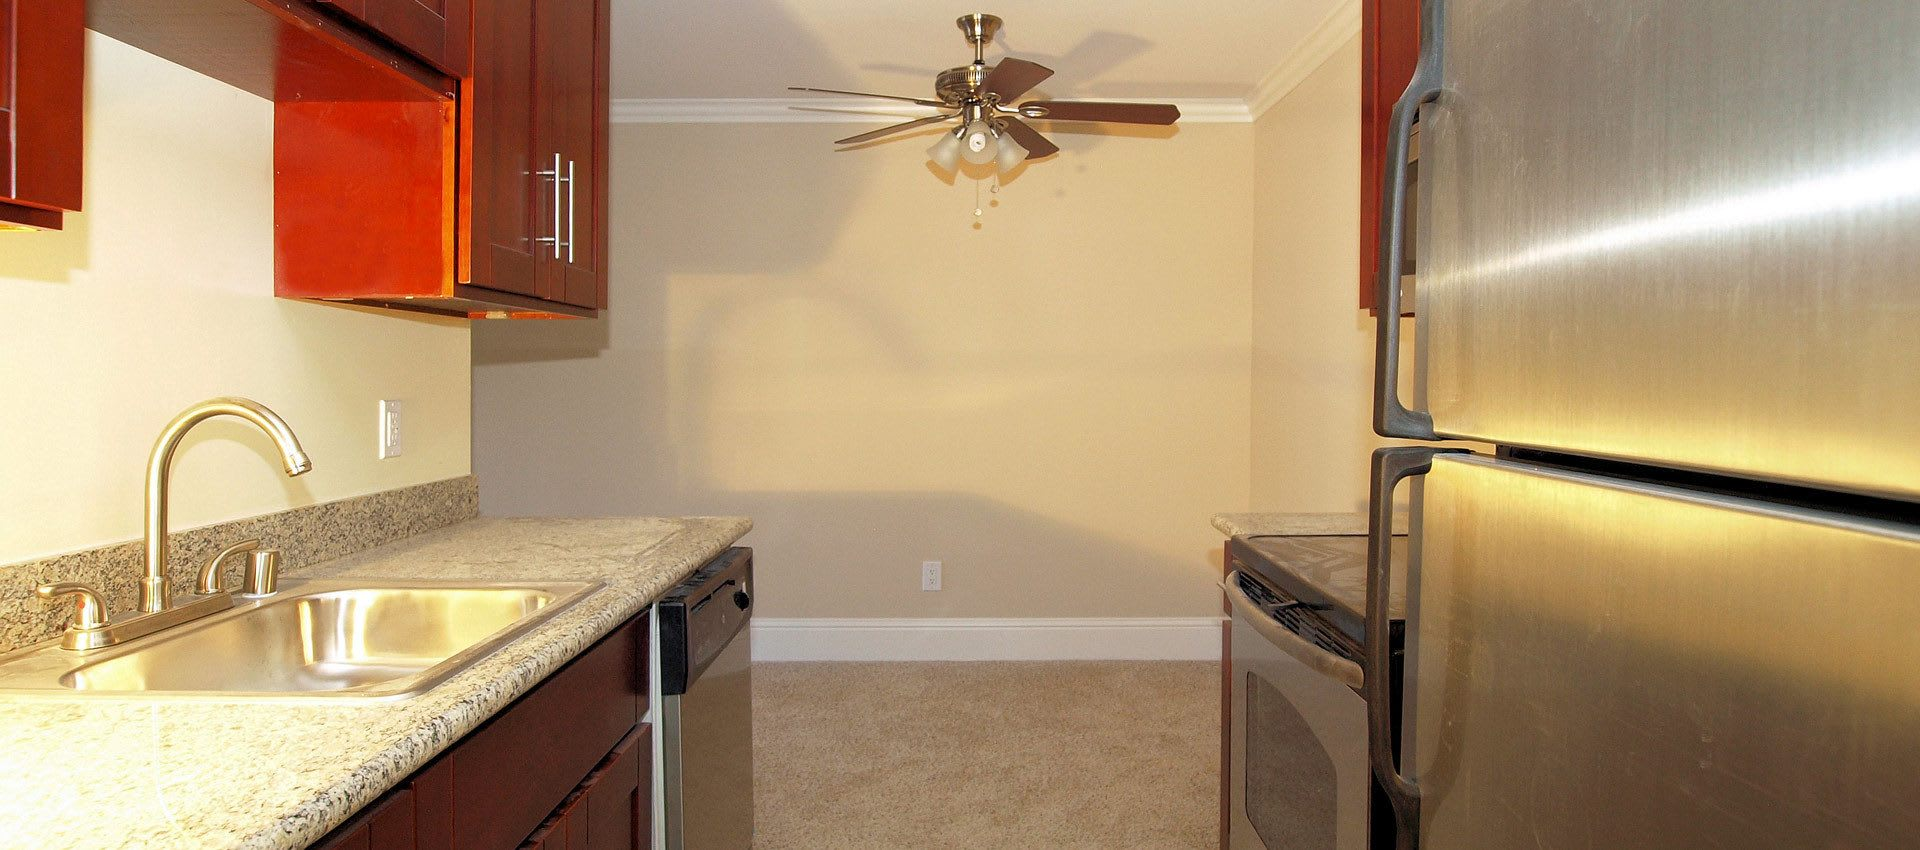 Kitchen at Regency Plaza Apartment Homes in Martinez, CA